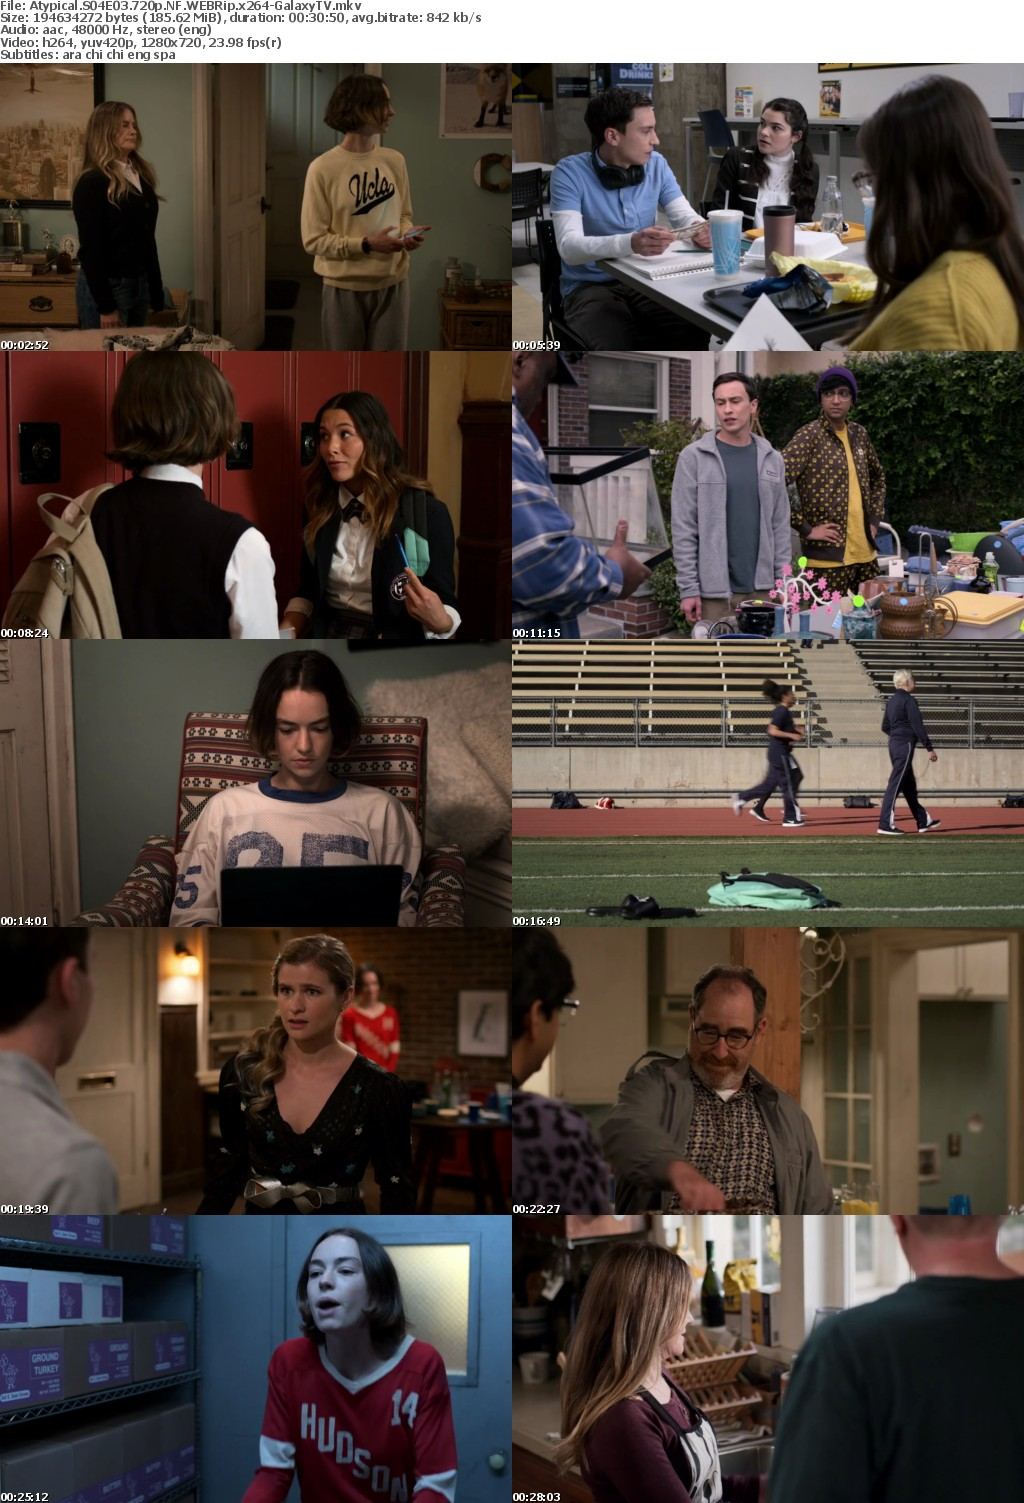 Atypical S04 COMPLETE REPACK 720p NF WEBRip x264-GalaxyTV